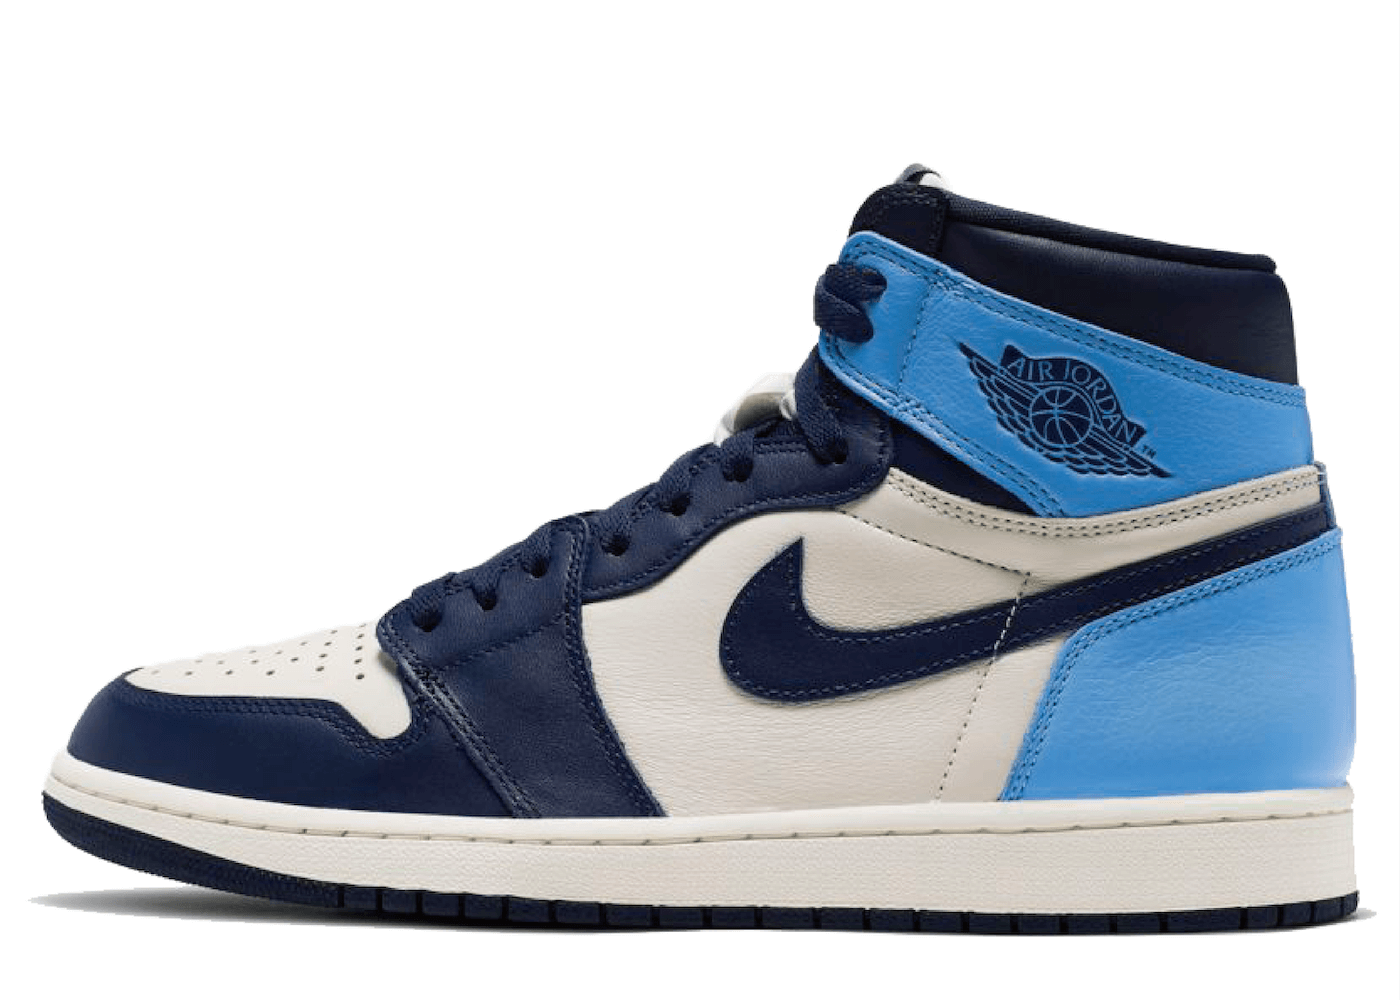 Nike Air Jordan 1 Retro High Obsidian UNCの写真